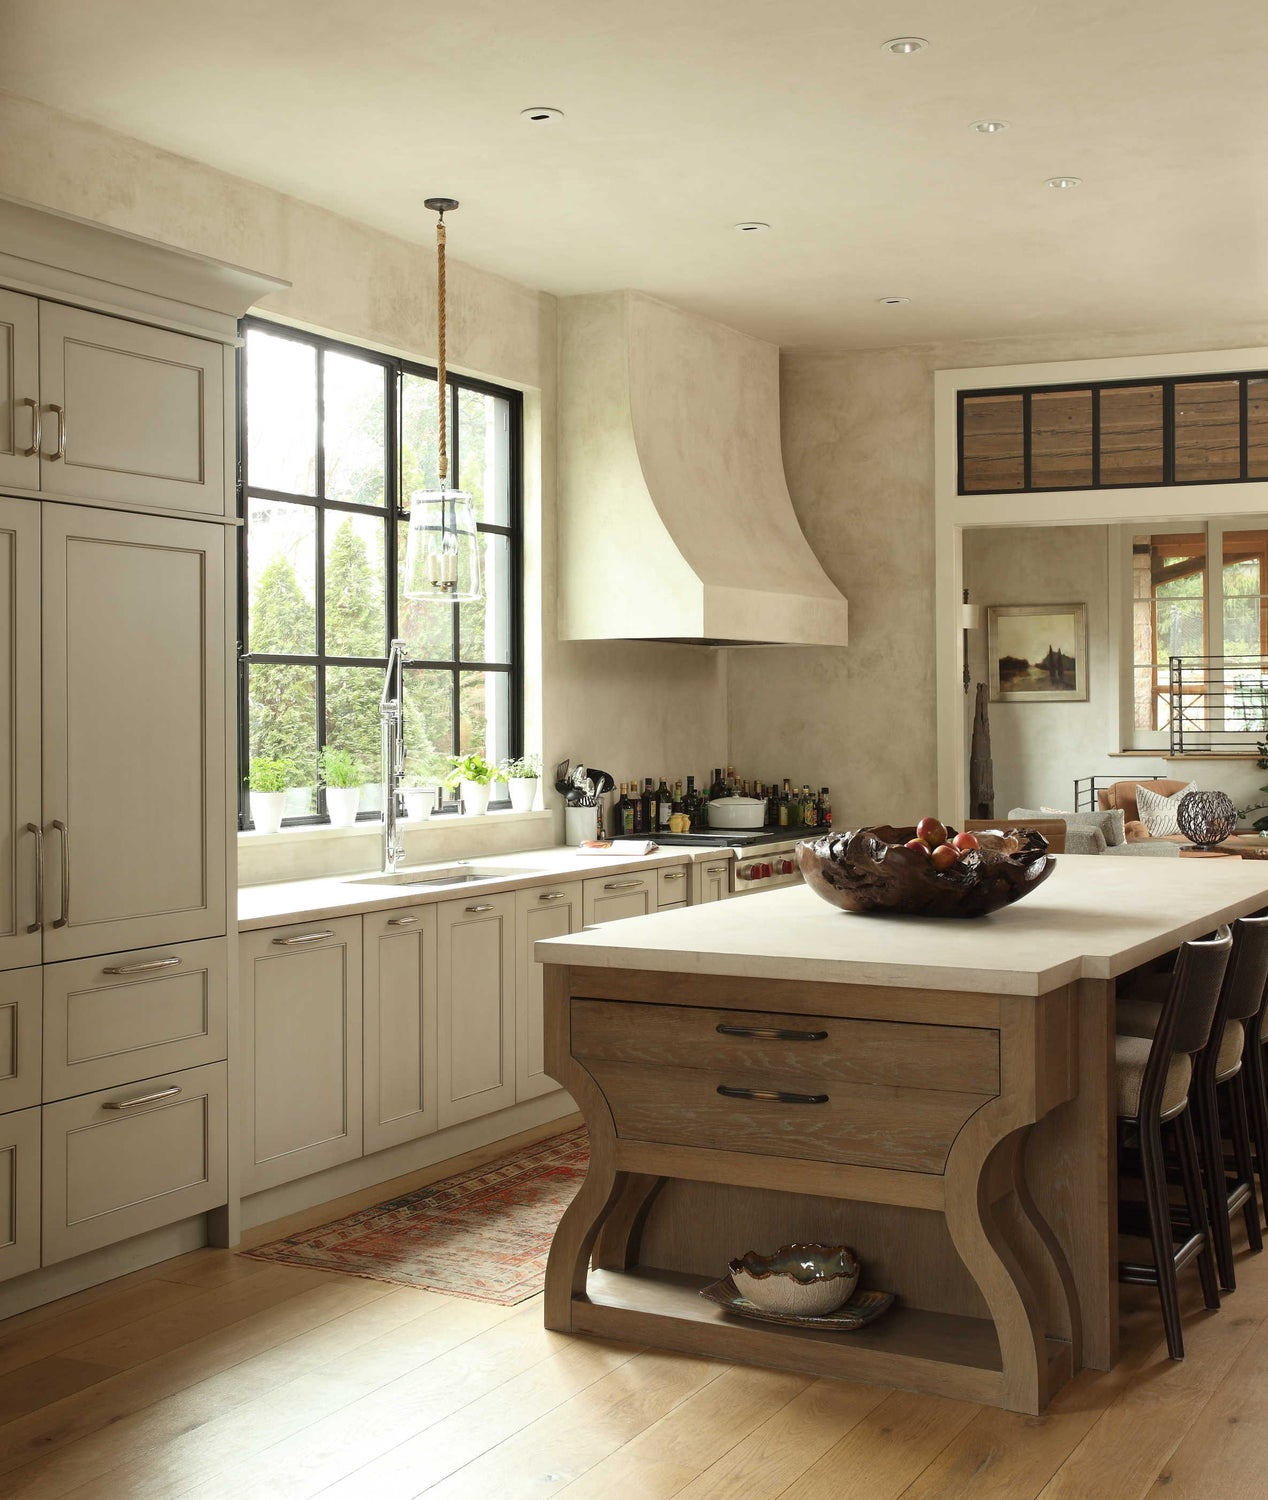 These Cream Kitchens With Wood Floors Got Us Feeling All Dreamy | Hunker